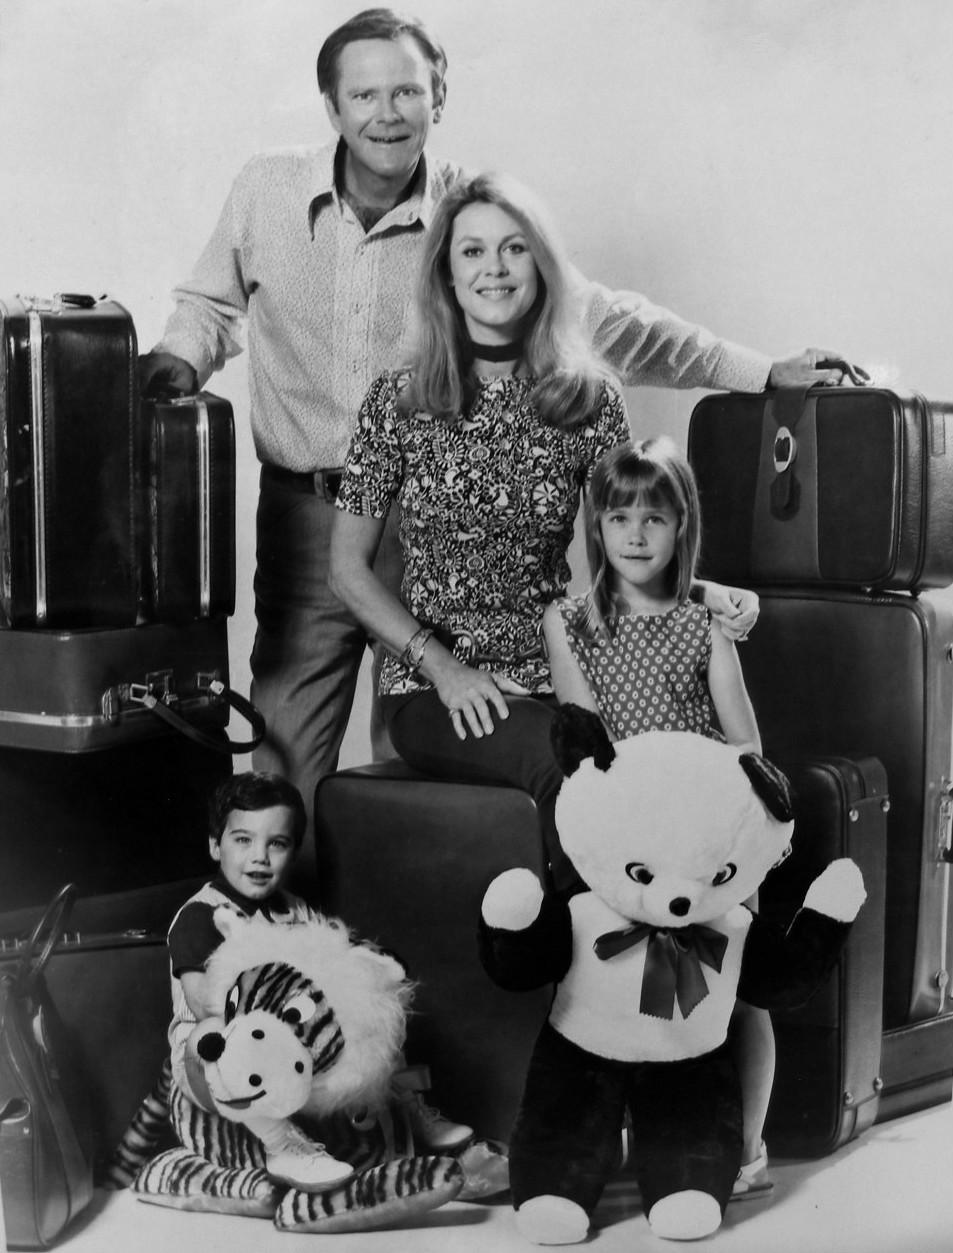 Cast photo of the Stephens family from the television program Bewitched. | Photo: Wikimedia Commons Images